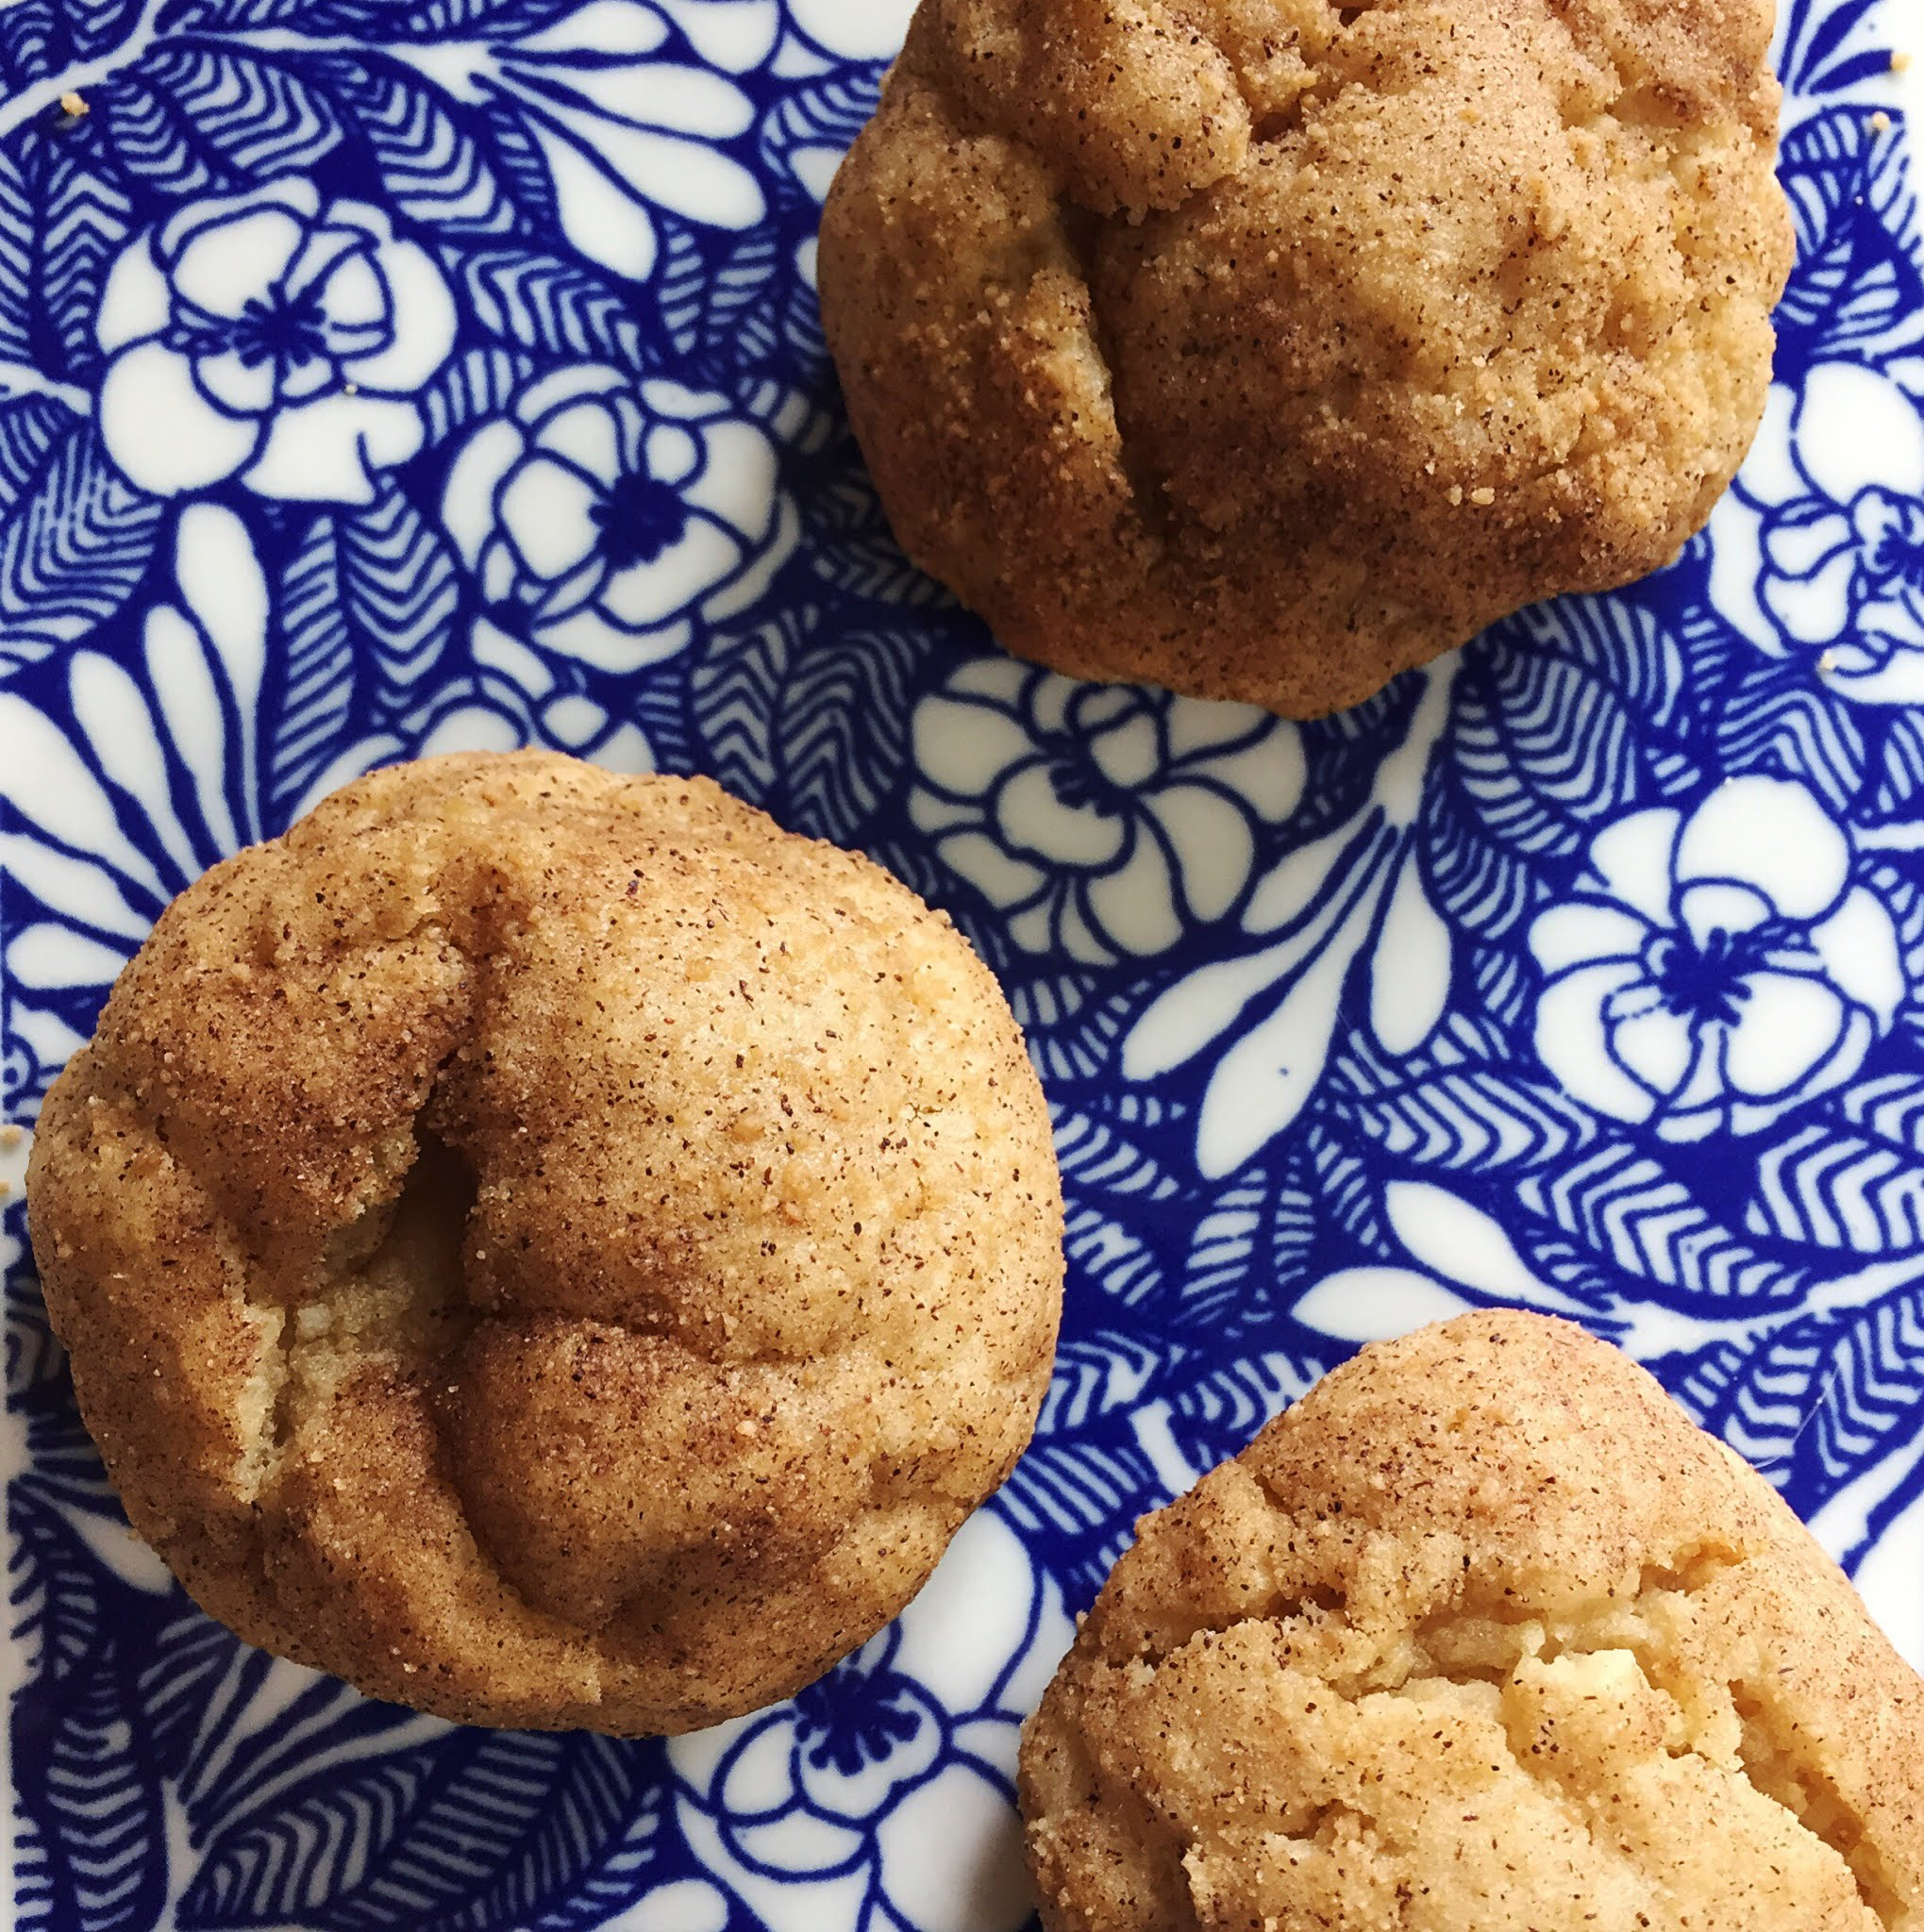 Recipe of the Week: Fluffy Maple Snickerdoodles